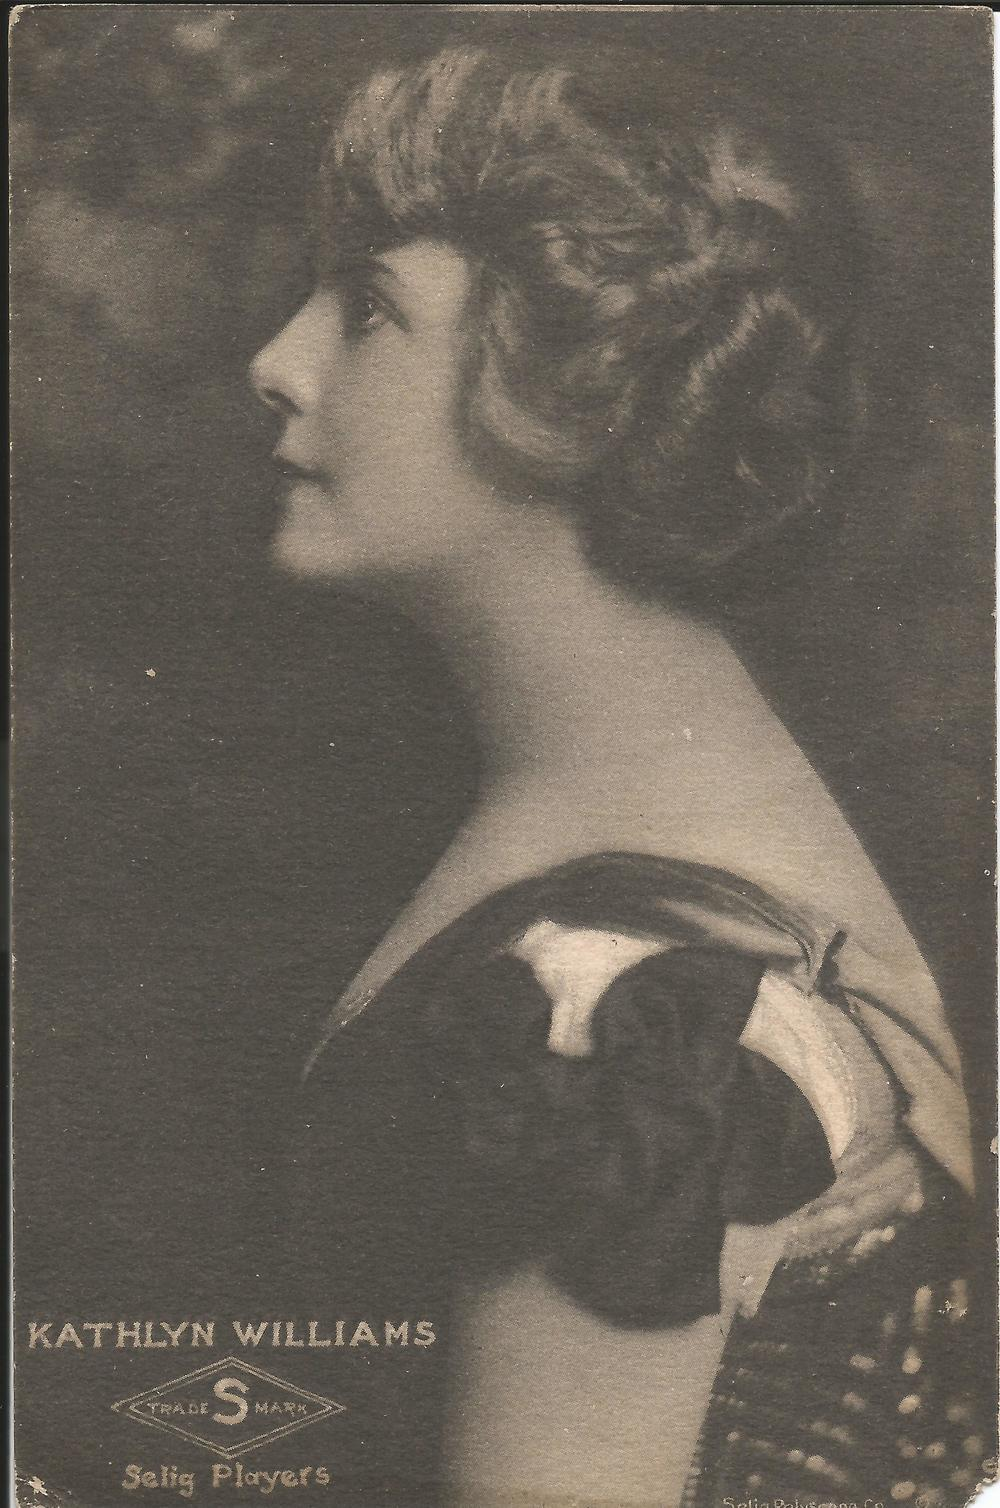 Promotional postcard of Kathlyn Williams